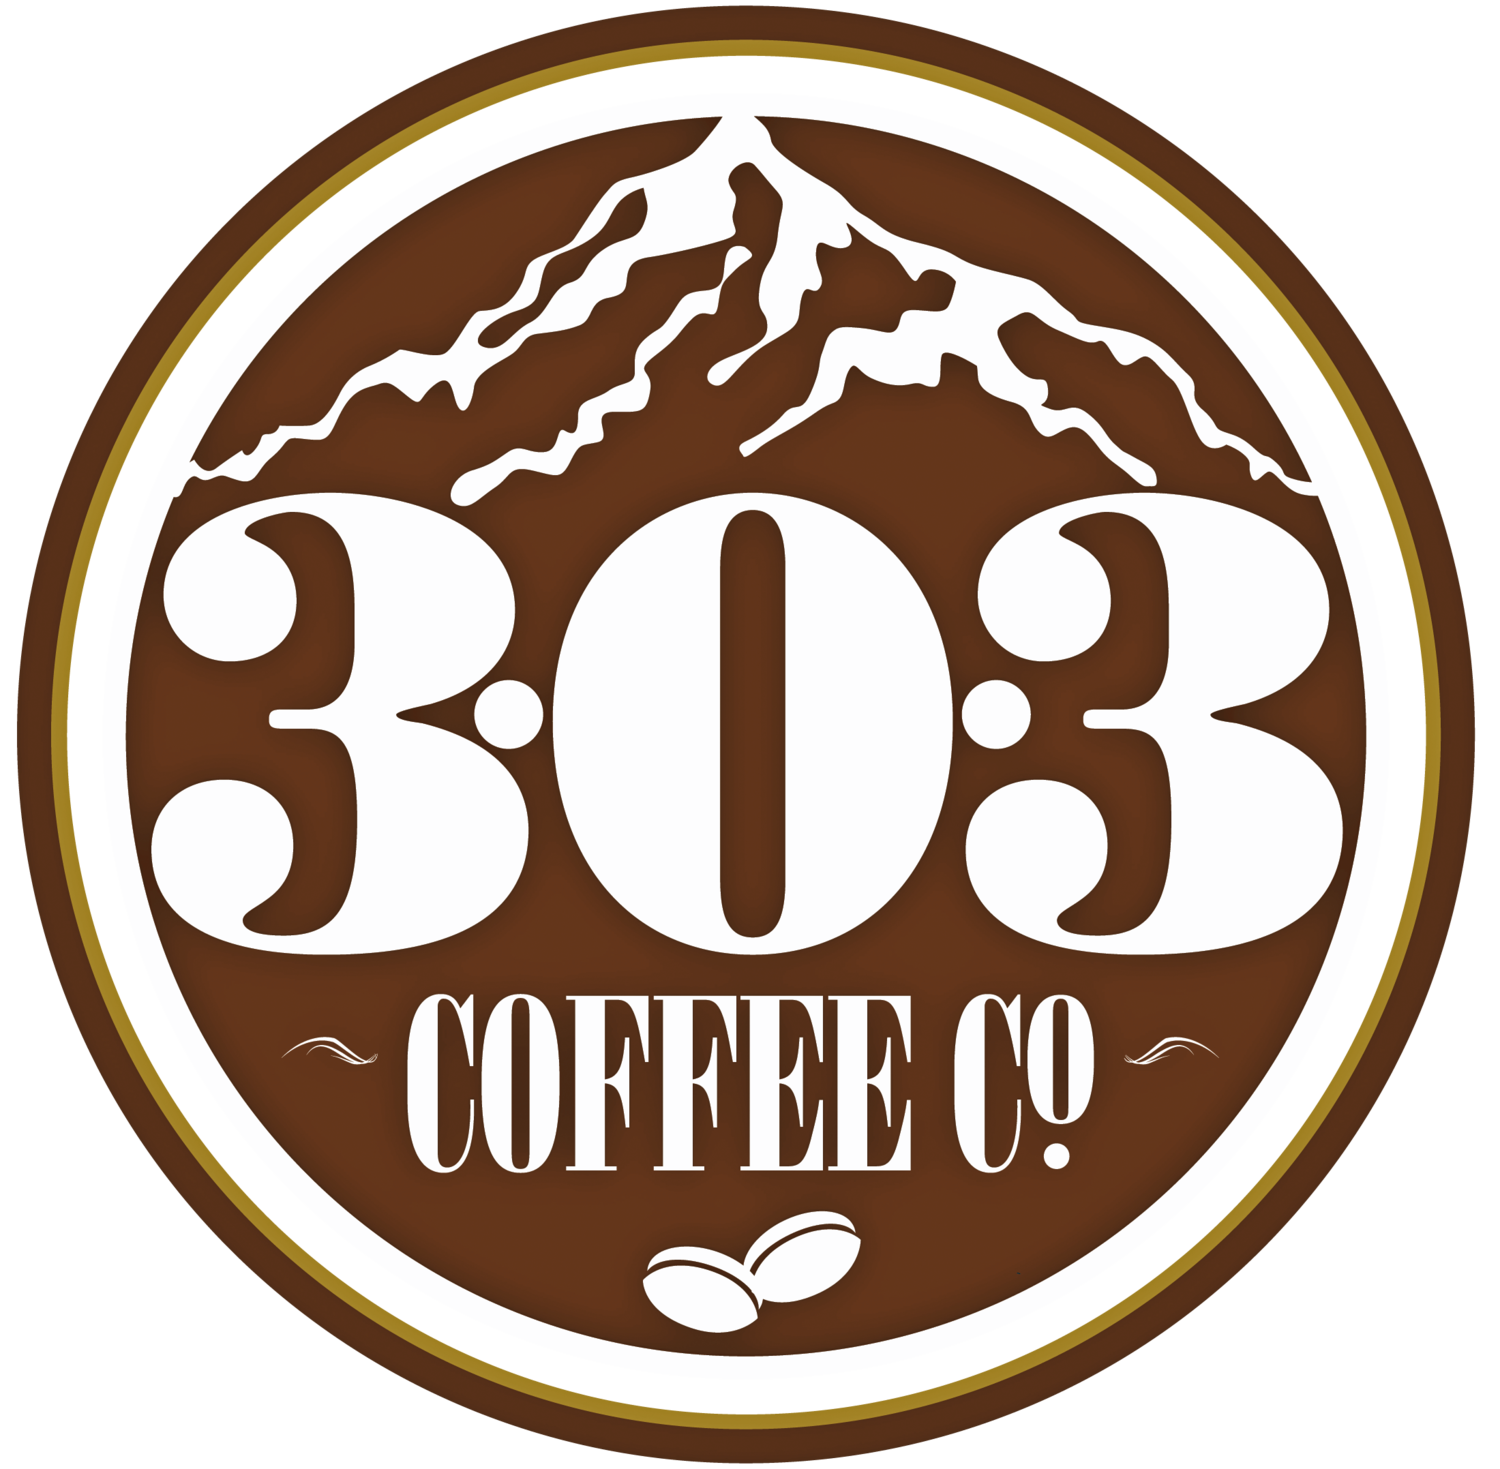 303 Coffee Co.